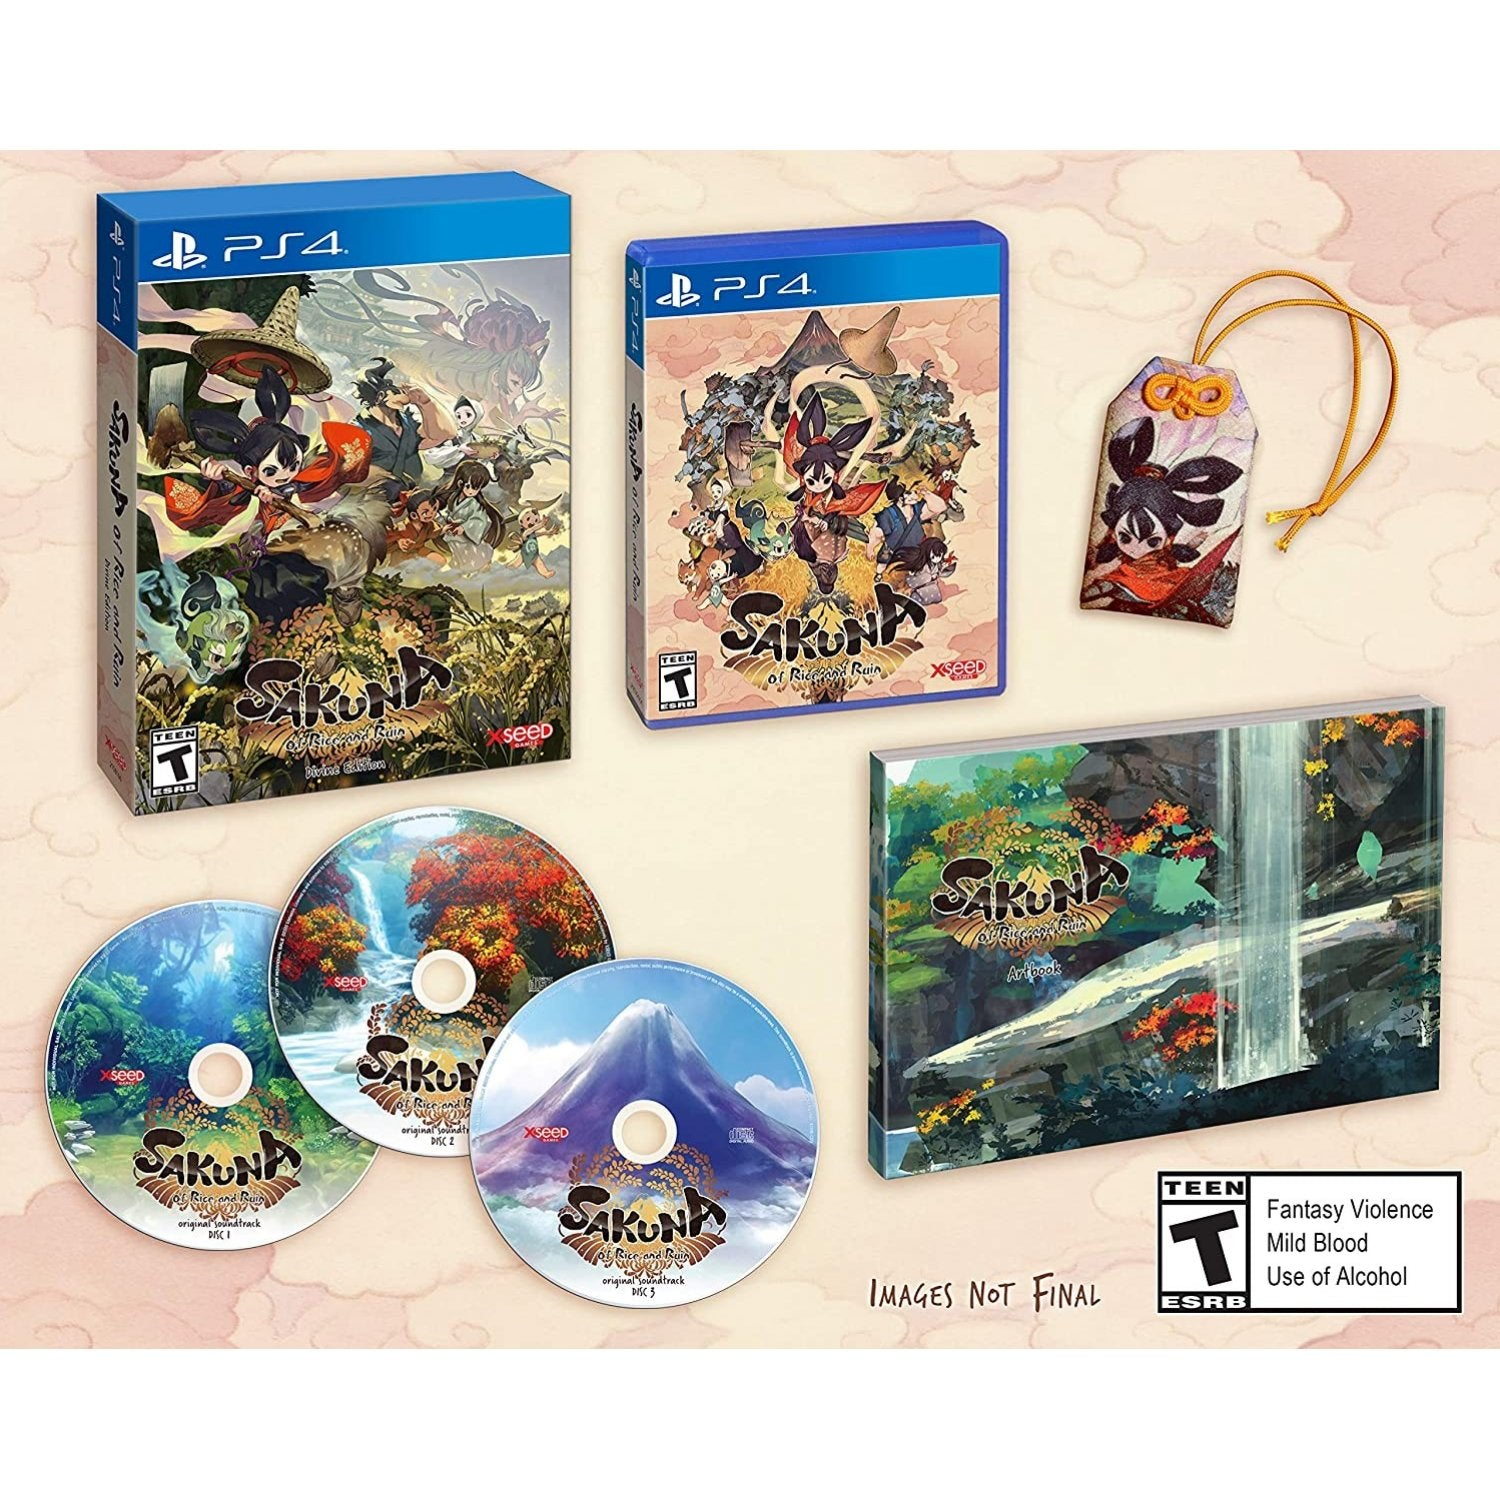 PS4 Sakuna: Of Rice and Ruin [Divine Edition]